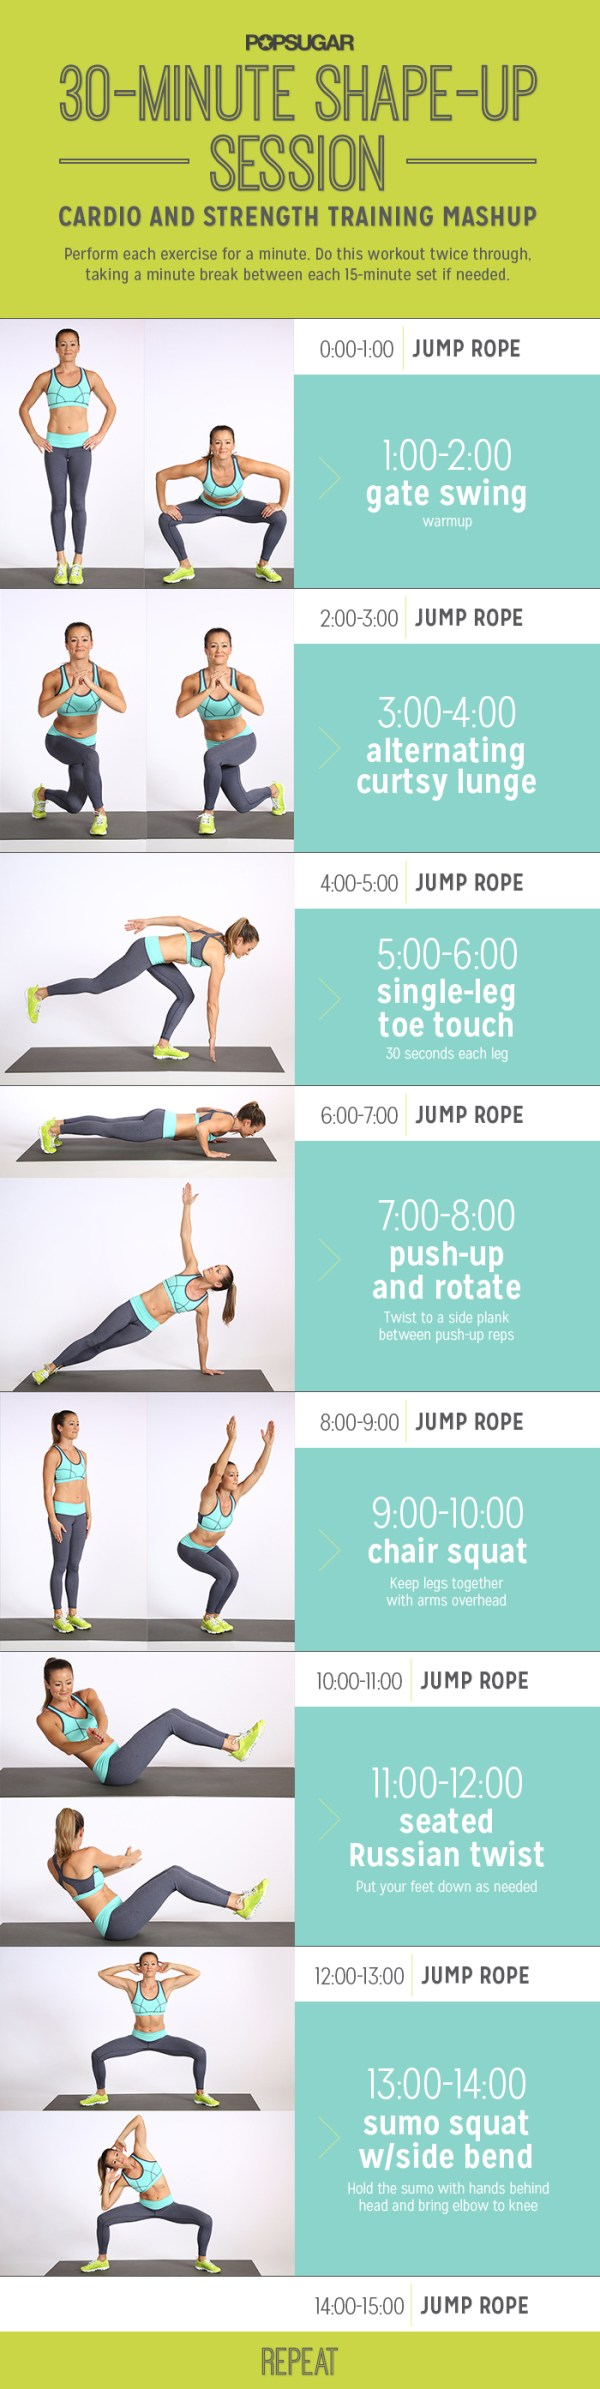 30-minutes-shap-up-sessions-inspire-my-workout